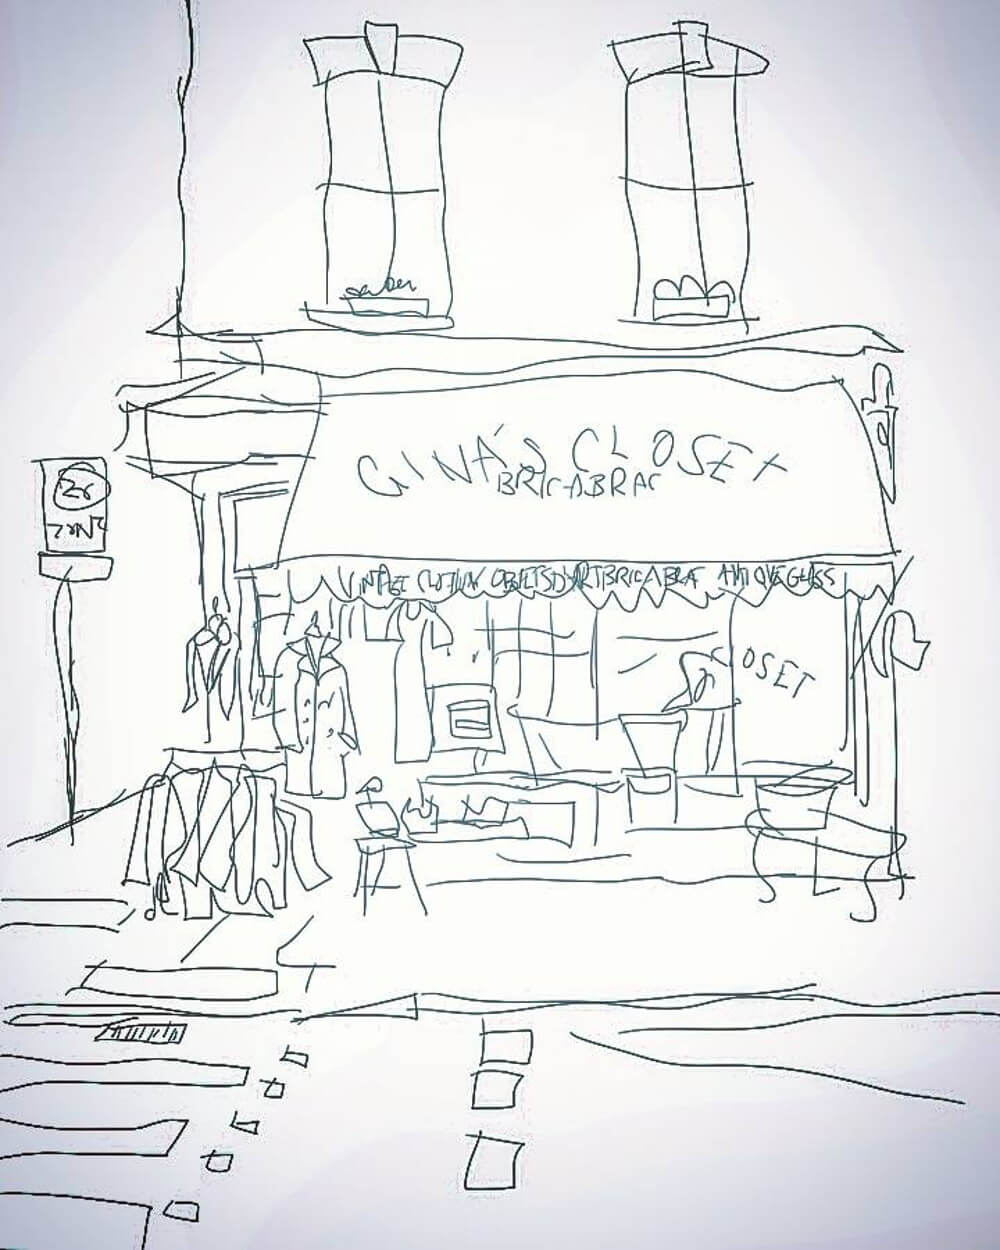 Drawing of Gina's Closet on Roman Road by Bex Shaw